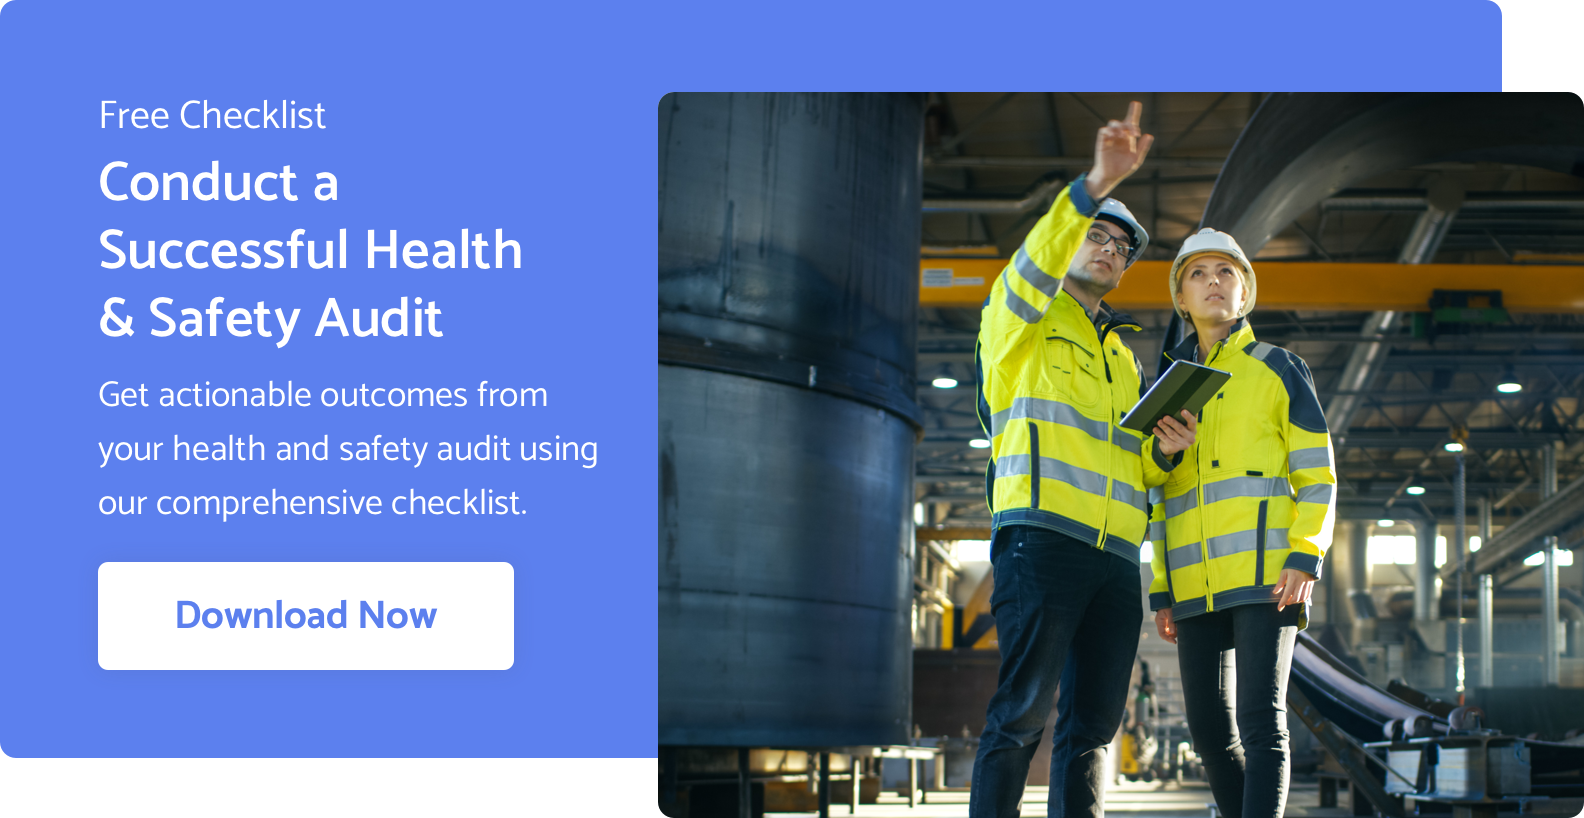 Free Checklist: Conduct a Successful Health & Safety Audit